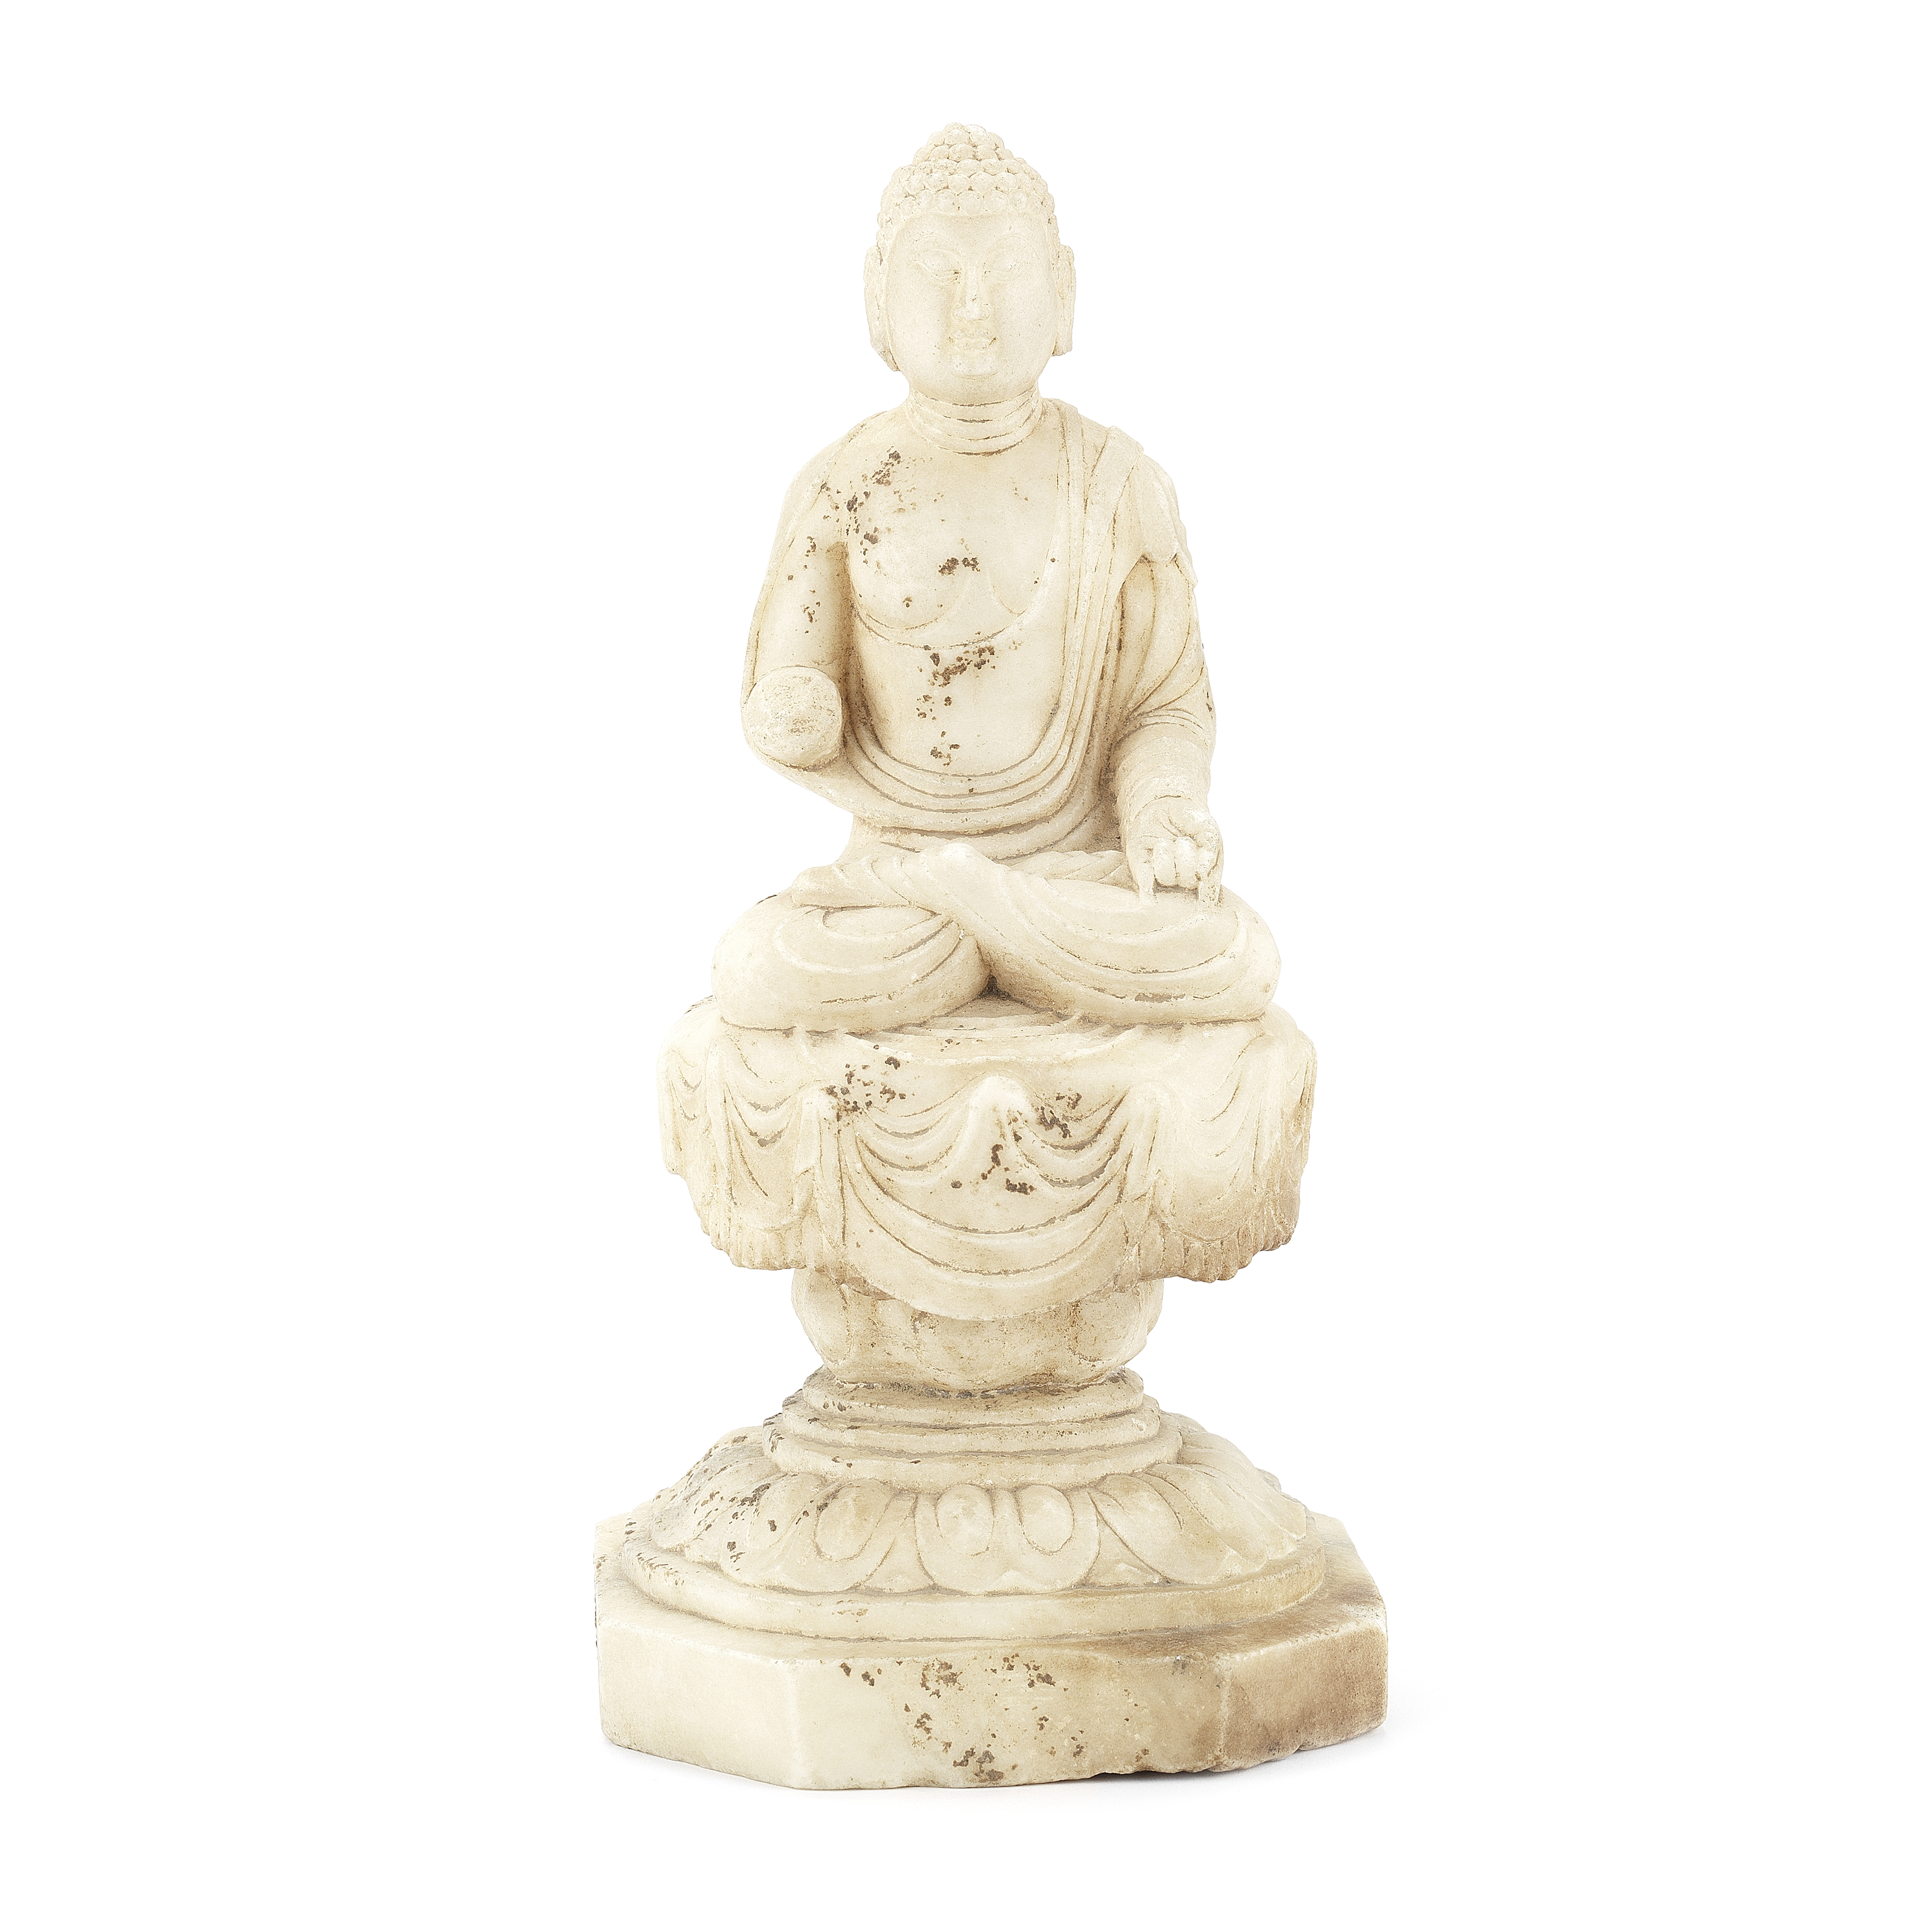 A TANG-STYLE MARBLE FIGURE OF BUDDHA